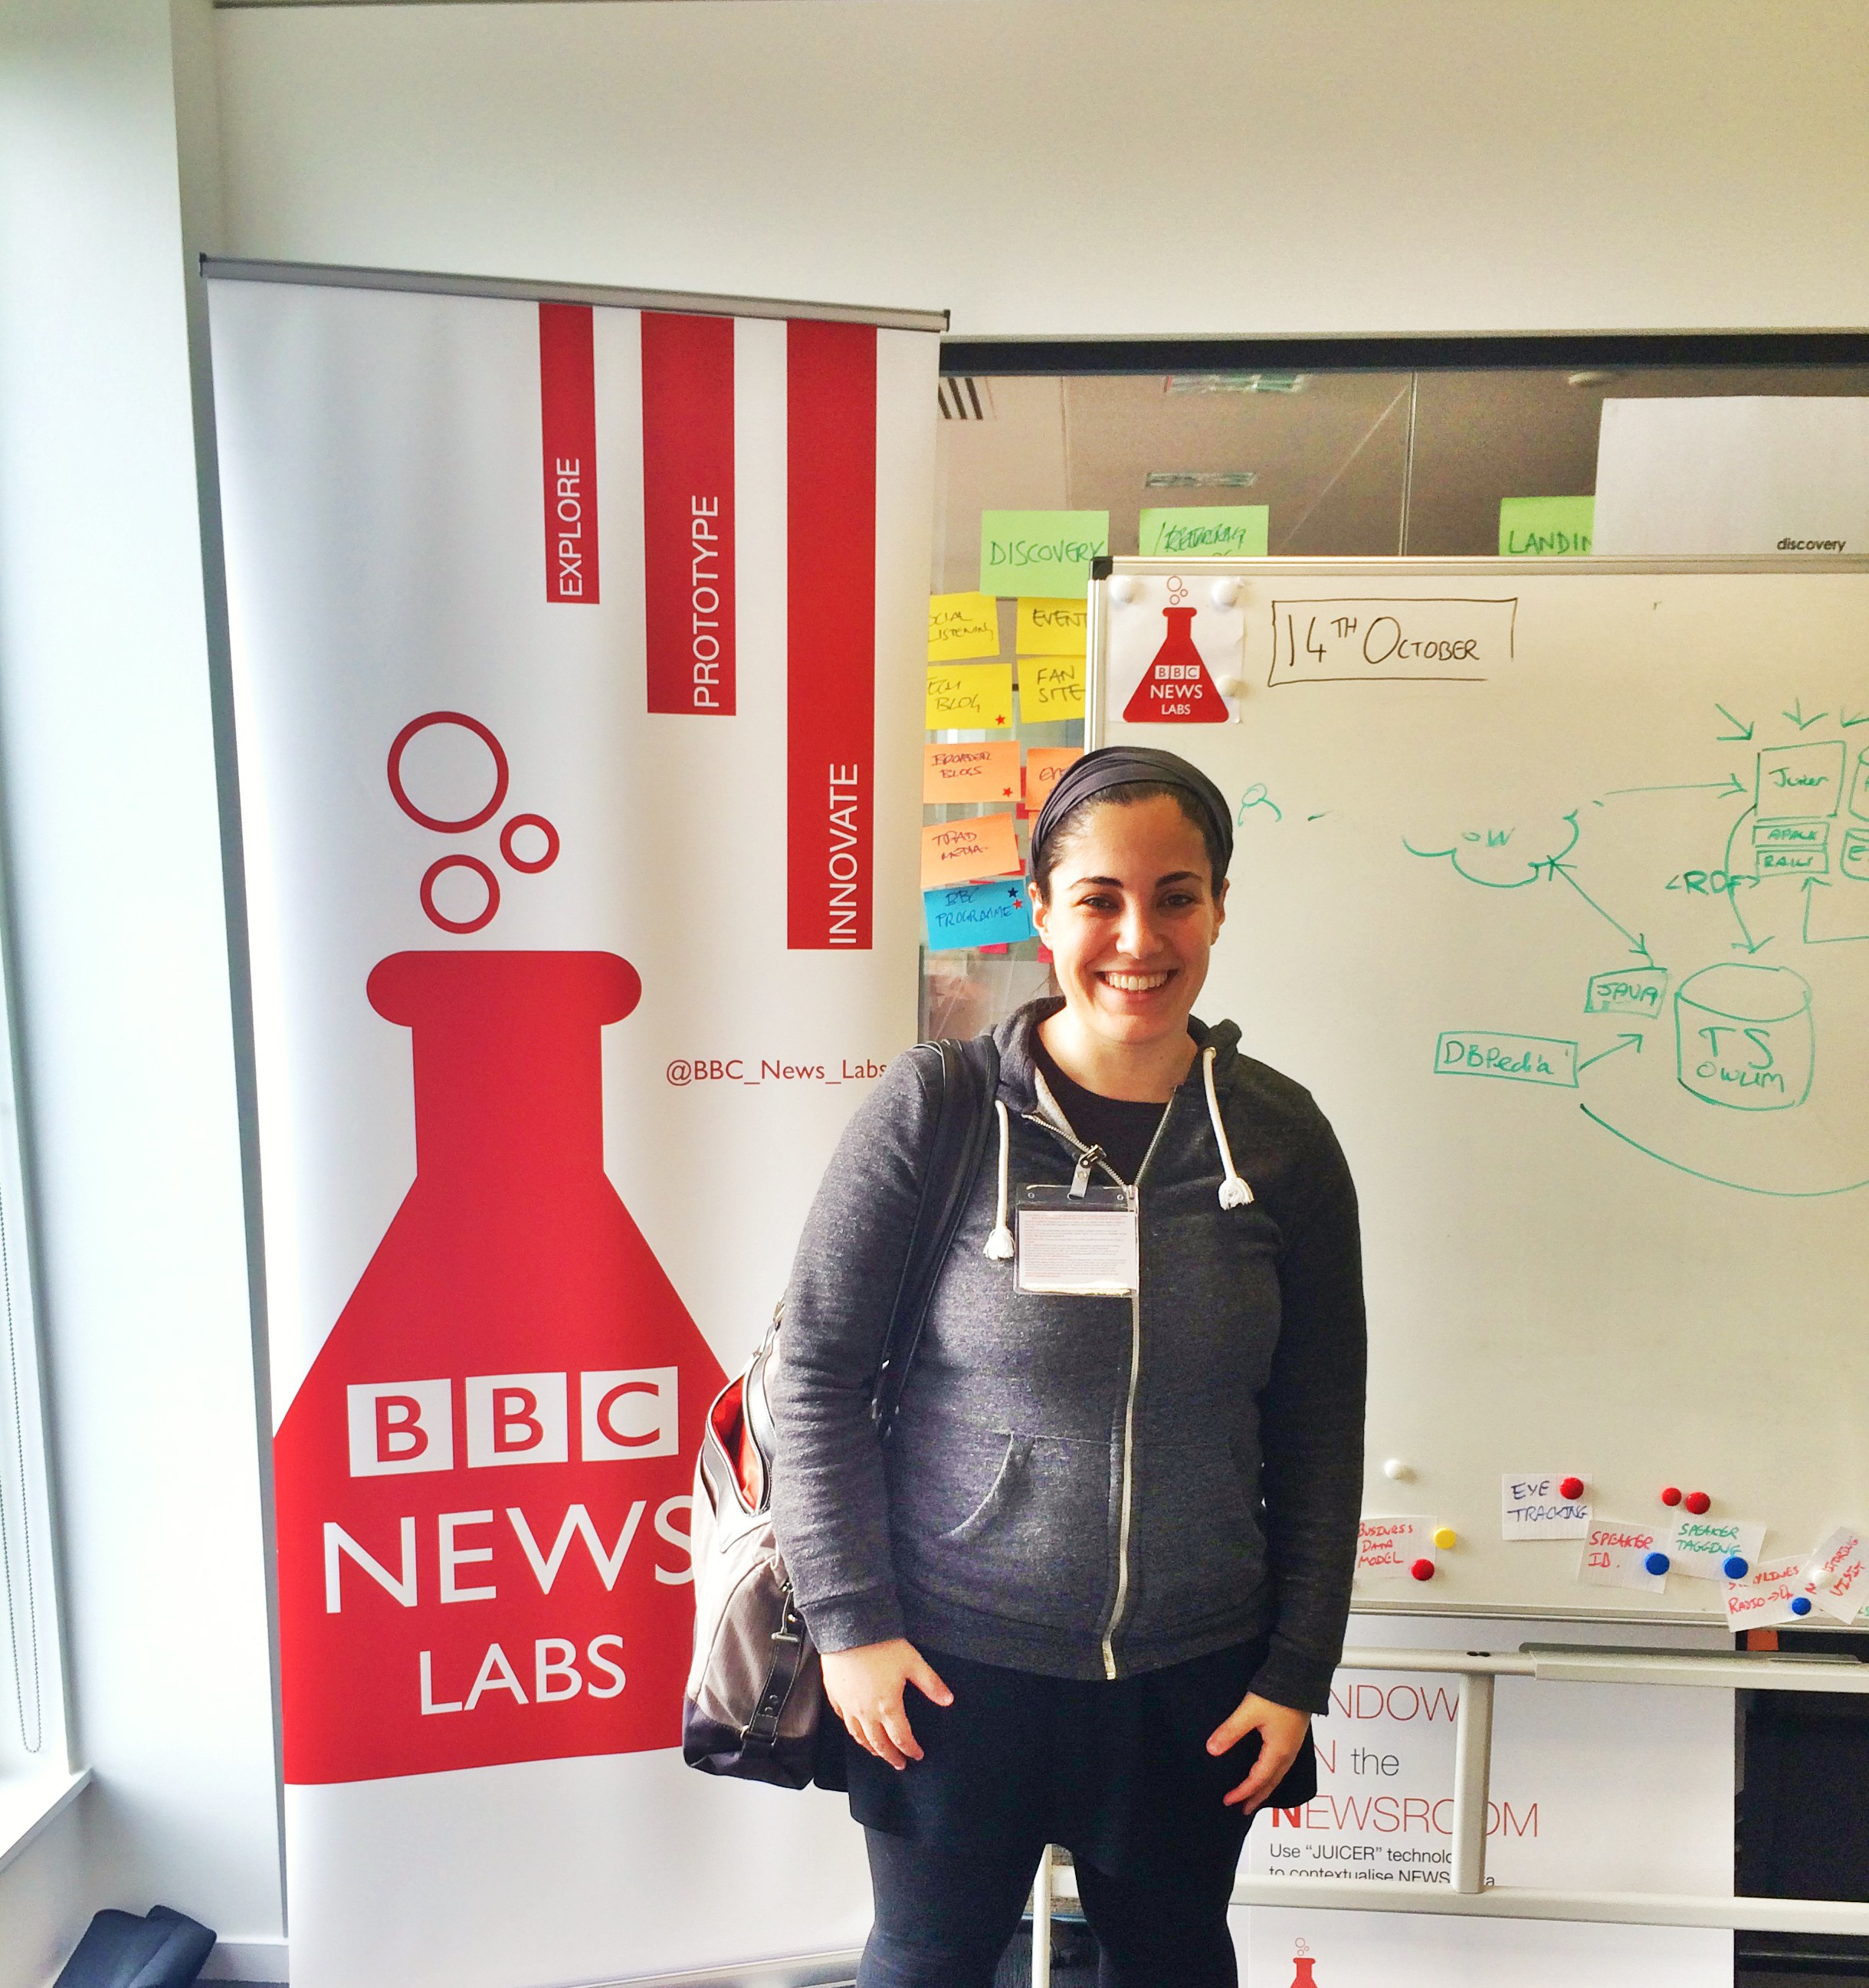 Melody Kramer from NPR - visitng BBC News Labs